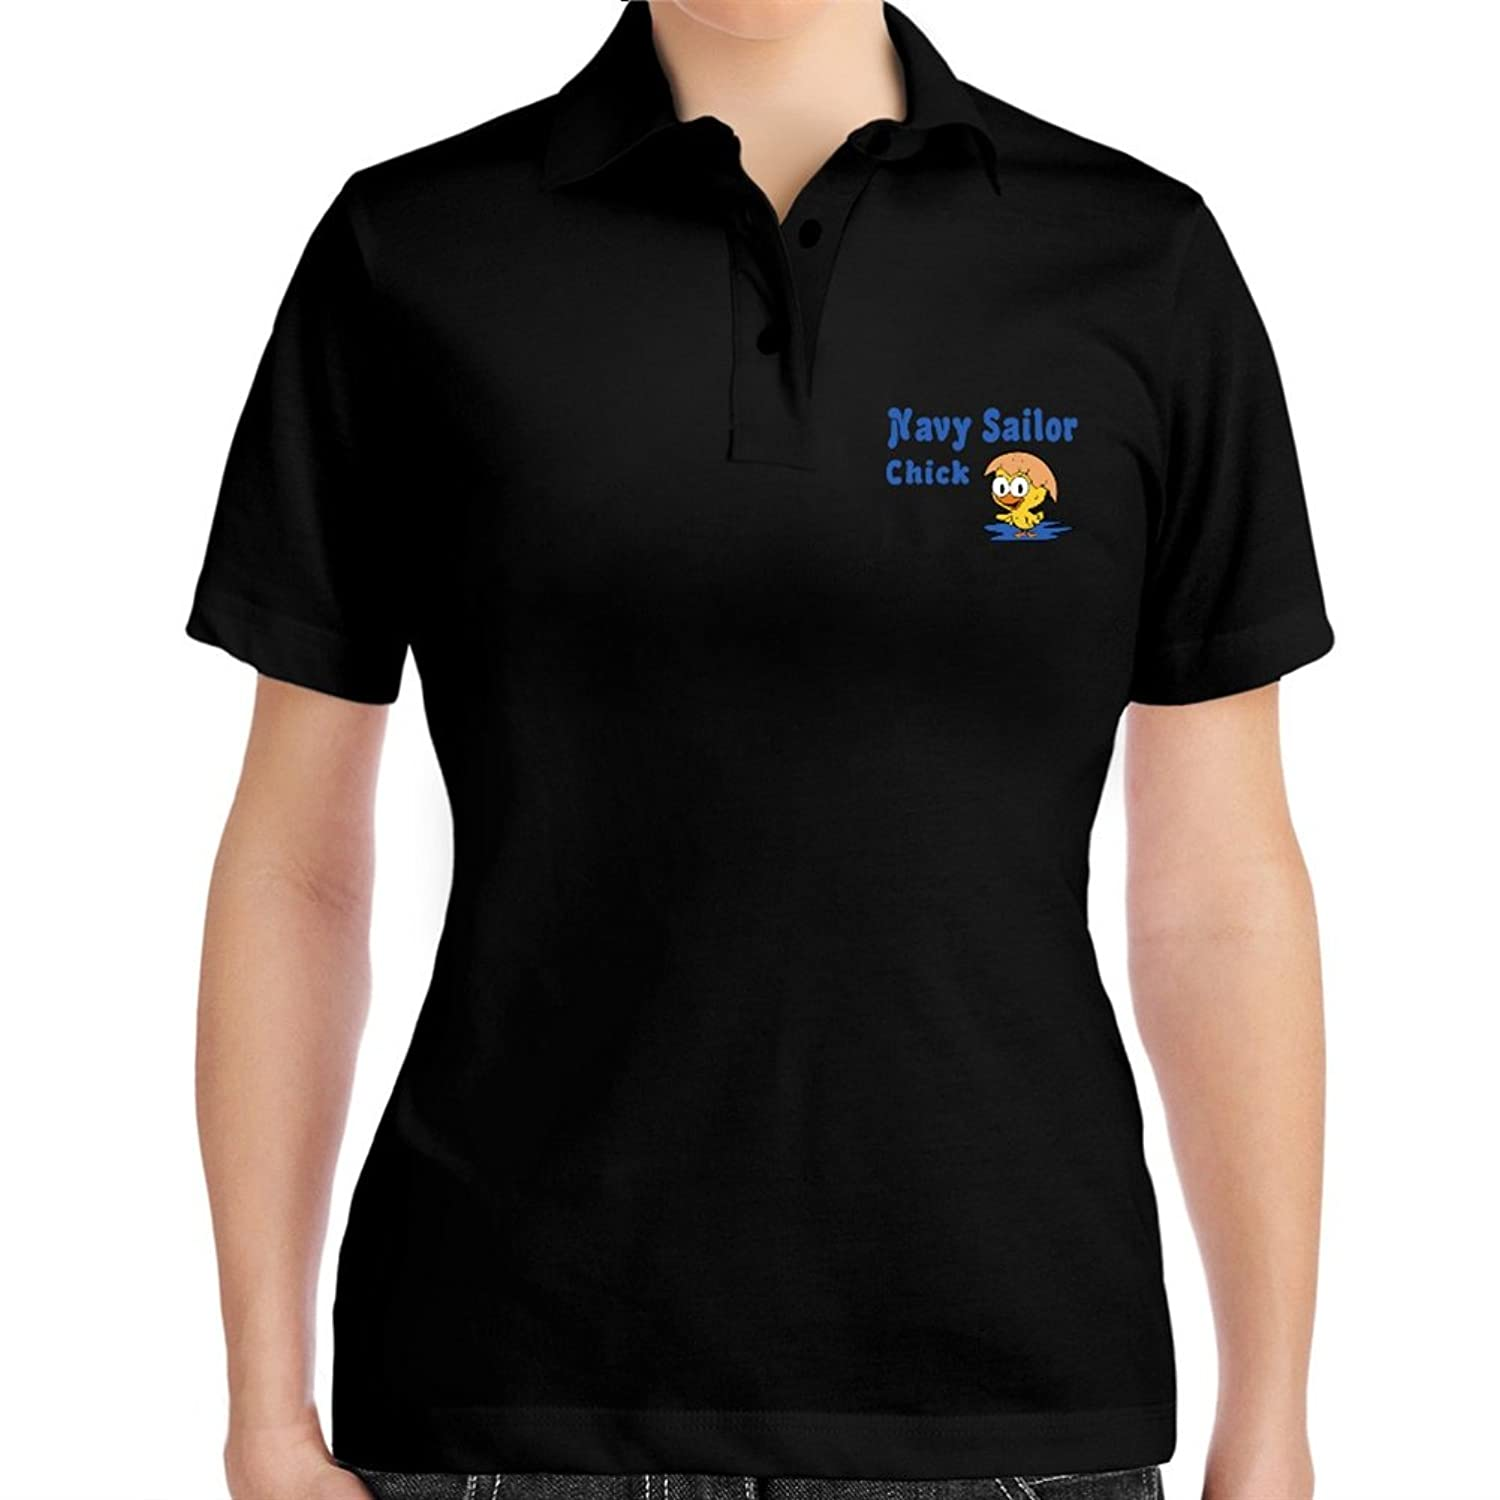 Navy Sailor chick Women Polo Shirt